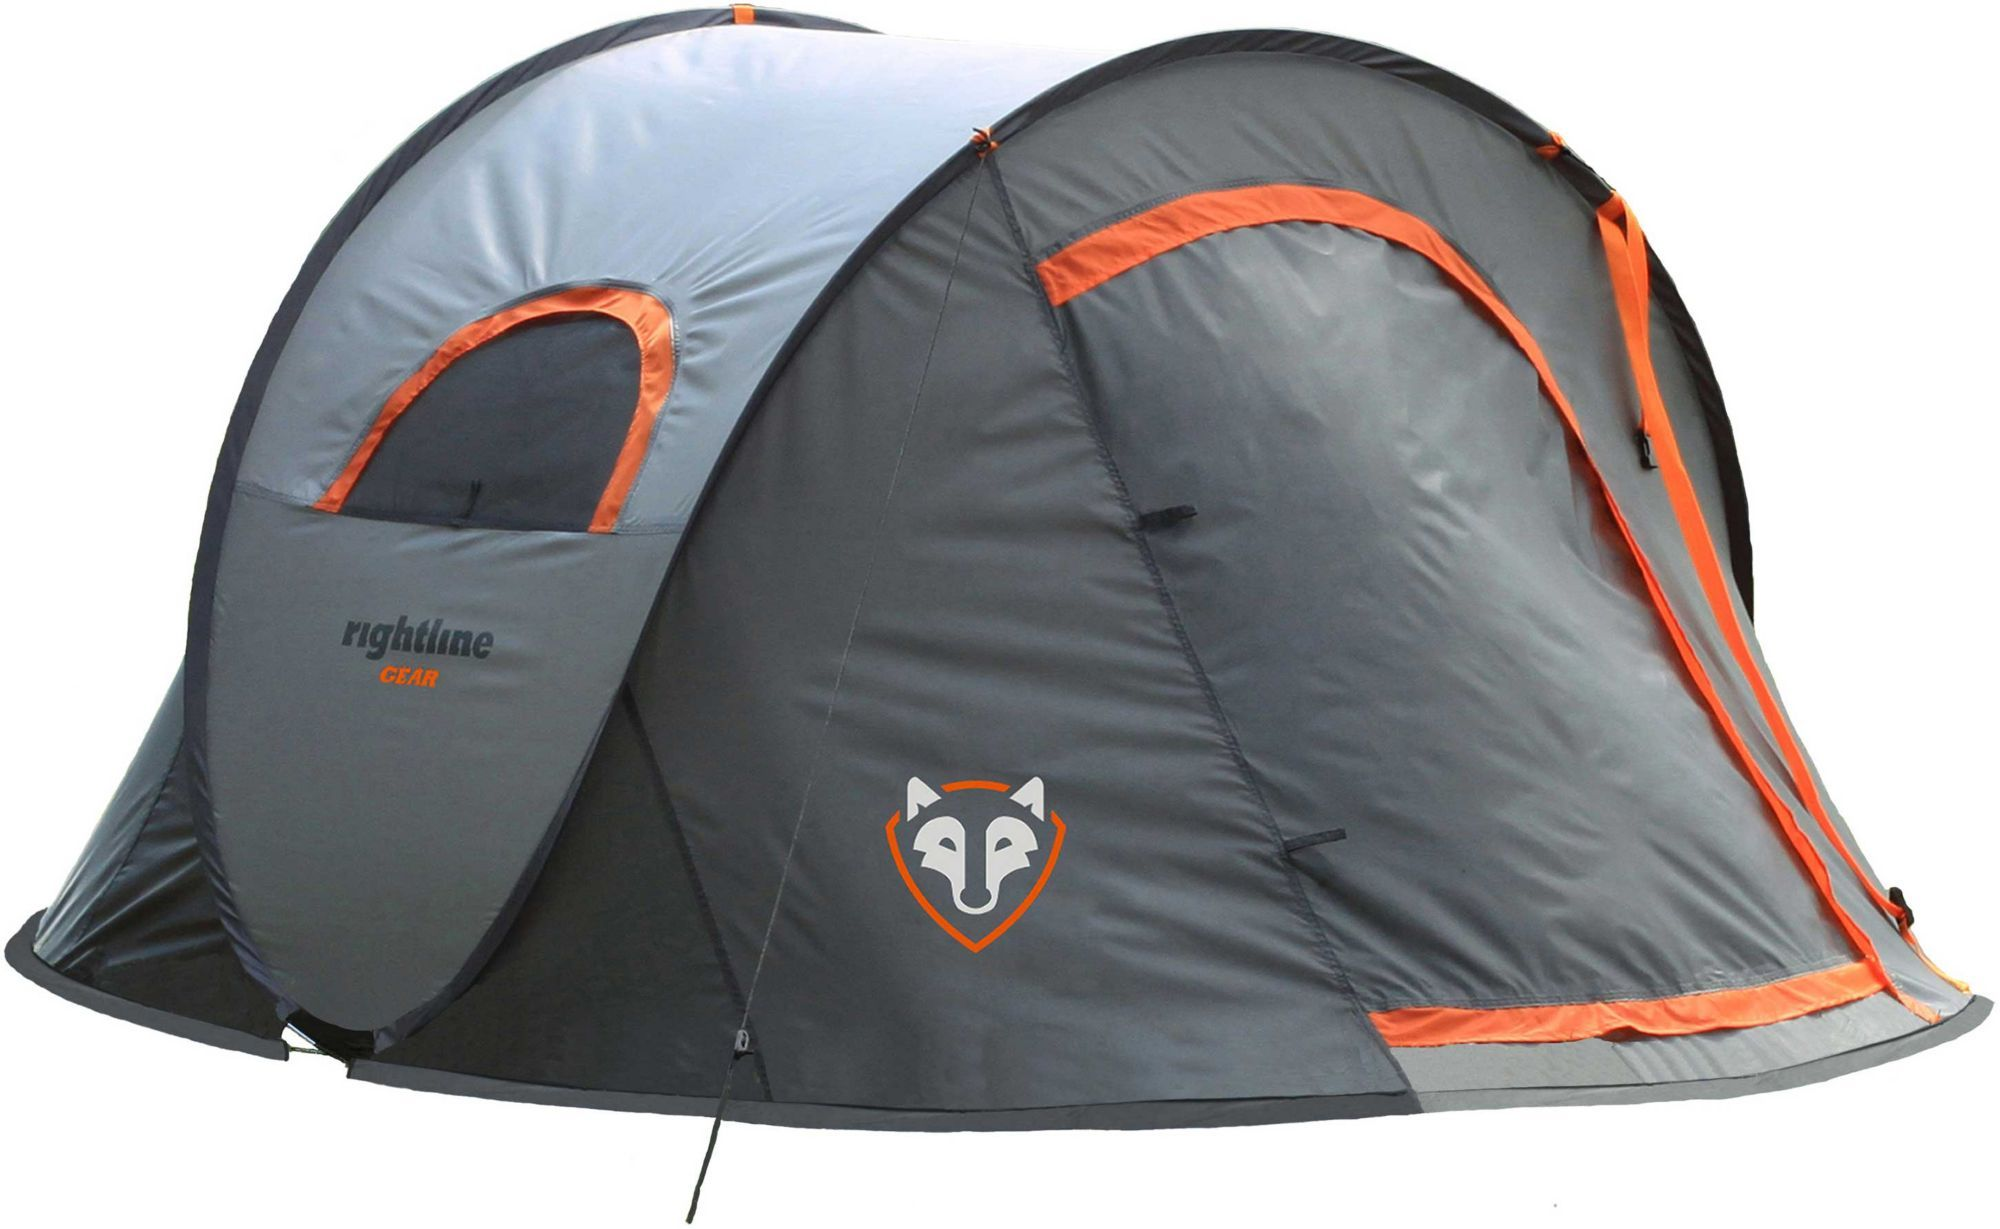 Rightline Gear 2 Person Pop Up Tent Products Tent